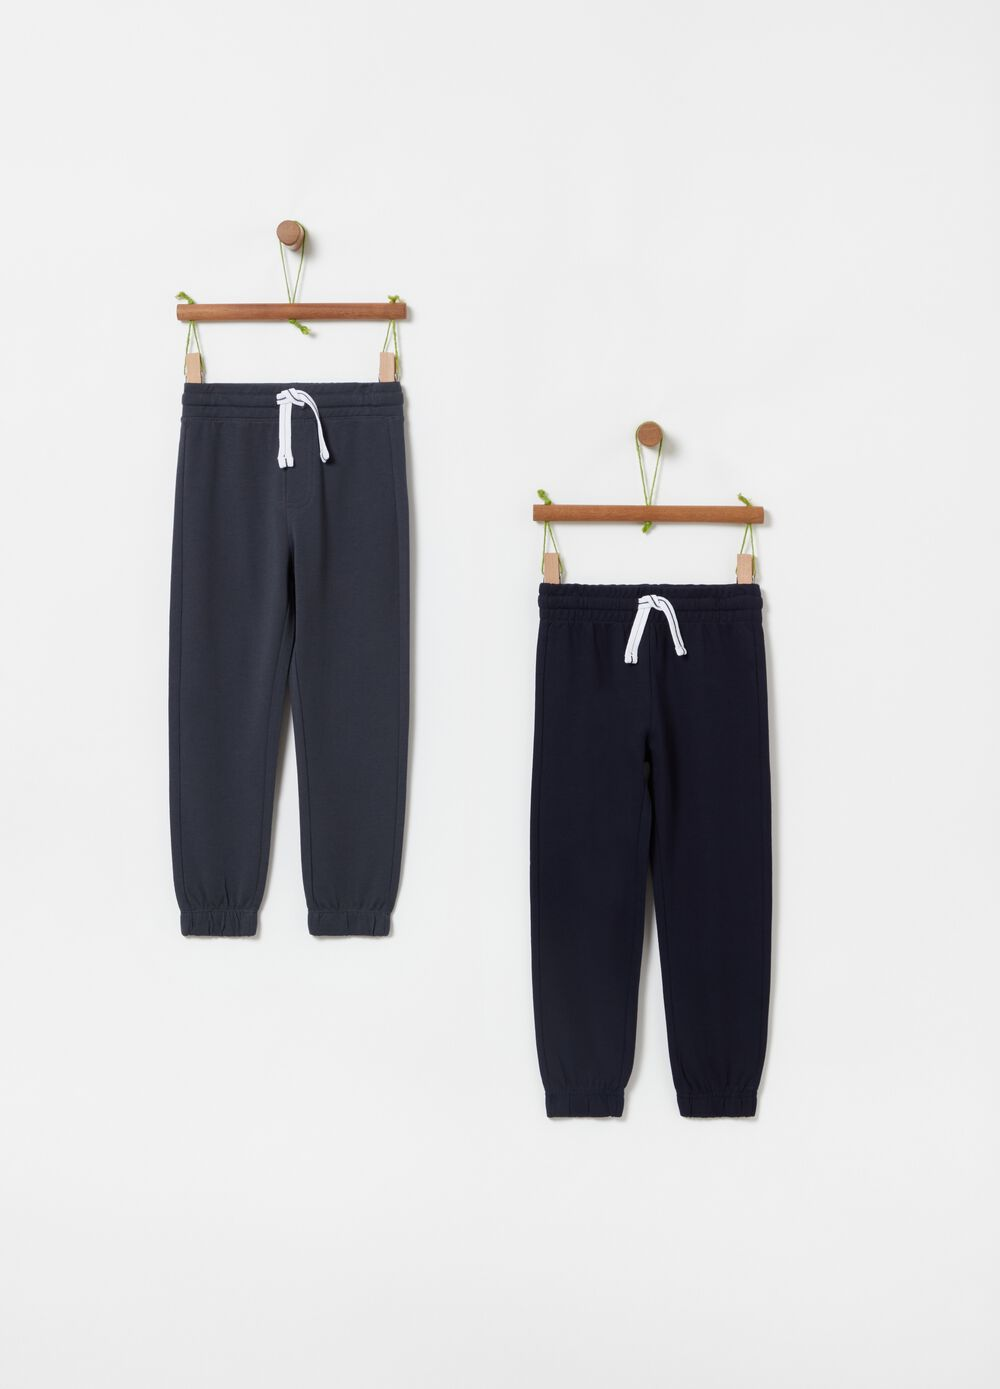 Two-pack solid colour 100% cotton joggers